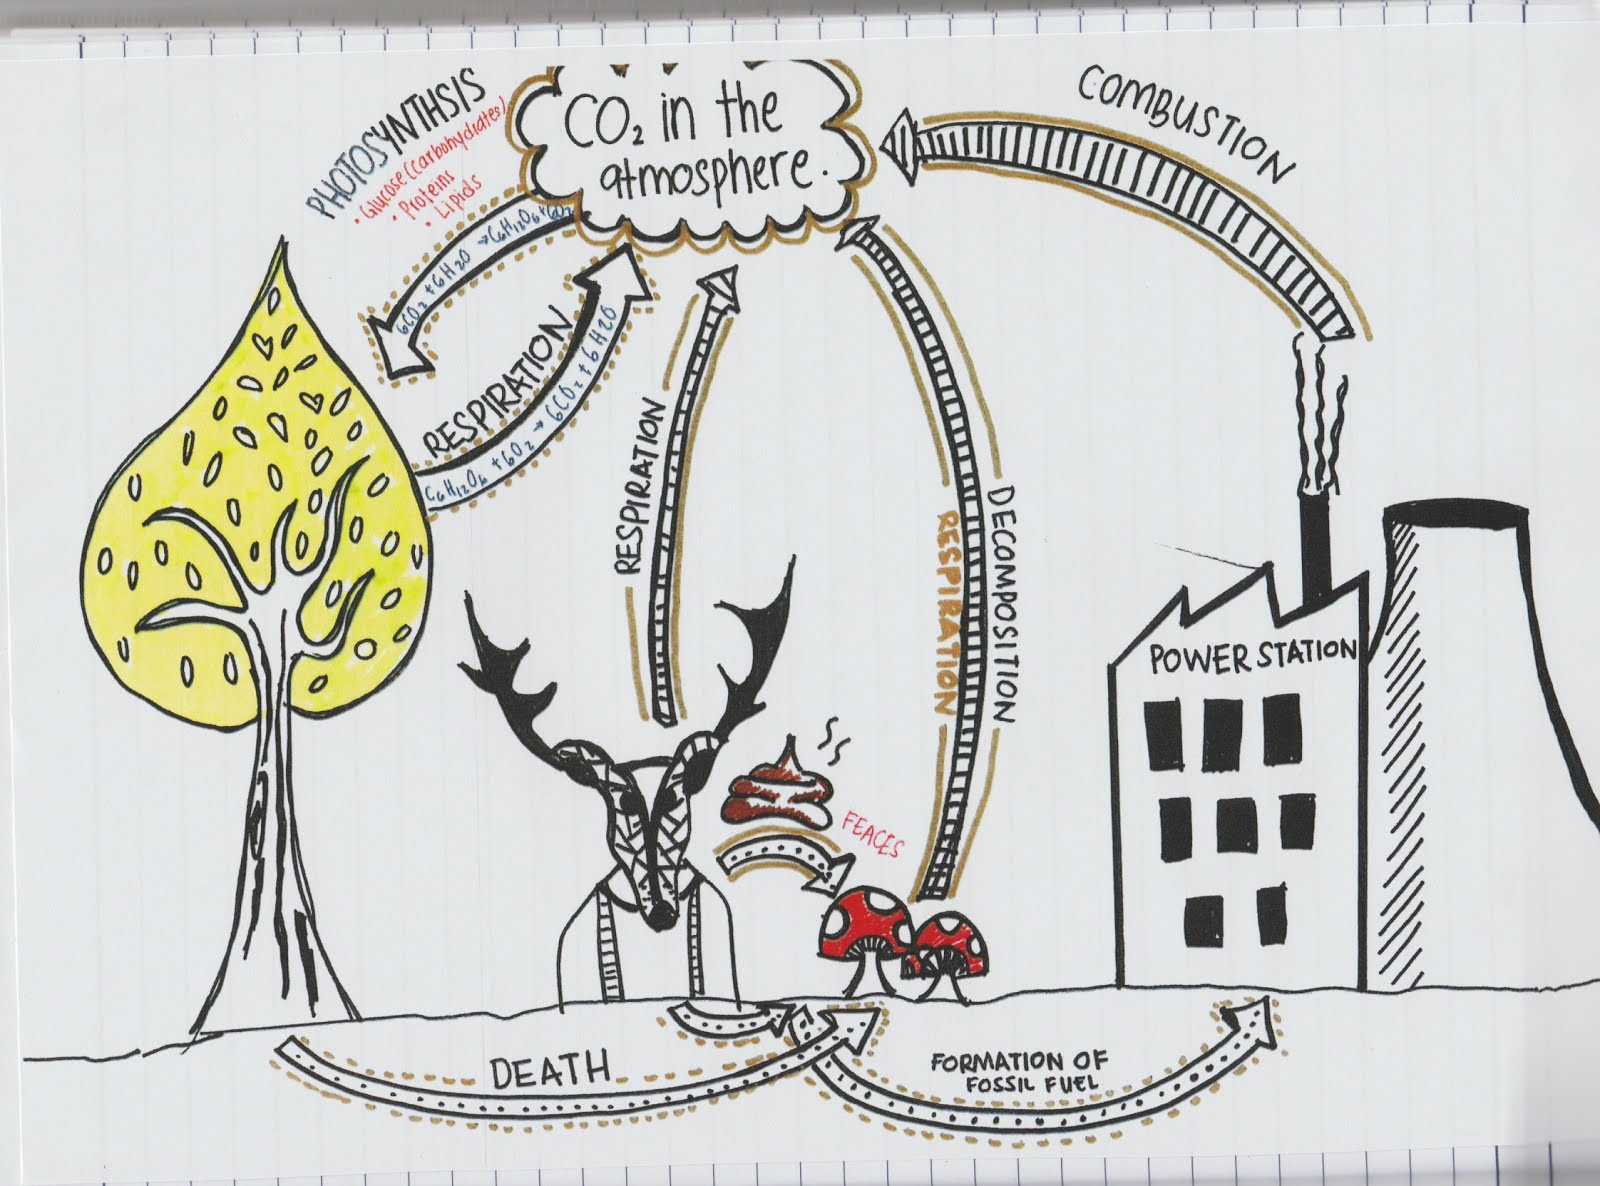 49 describe the stages in the carbon cycle including respiration 49 describe the stages in the carbon cycle including respiration photosynthesis decomposition and combustion ccuart Image collections